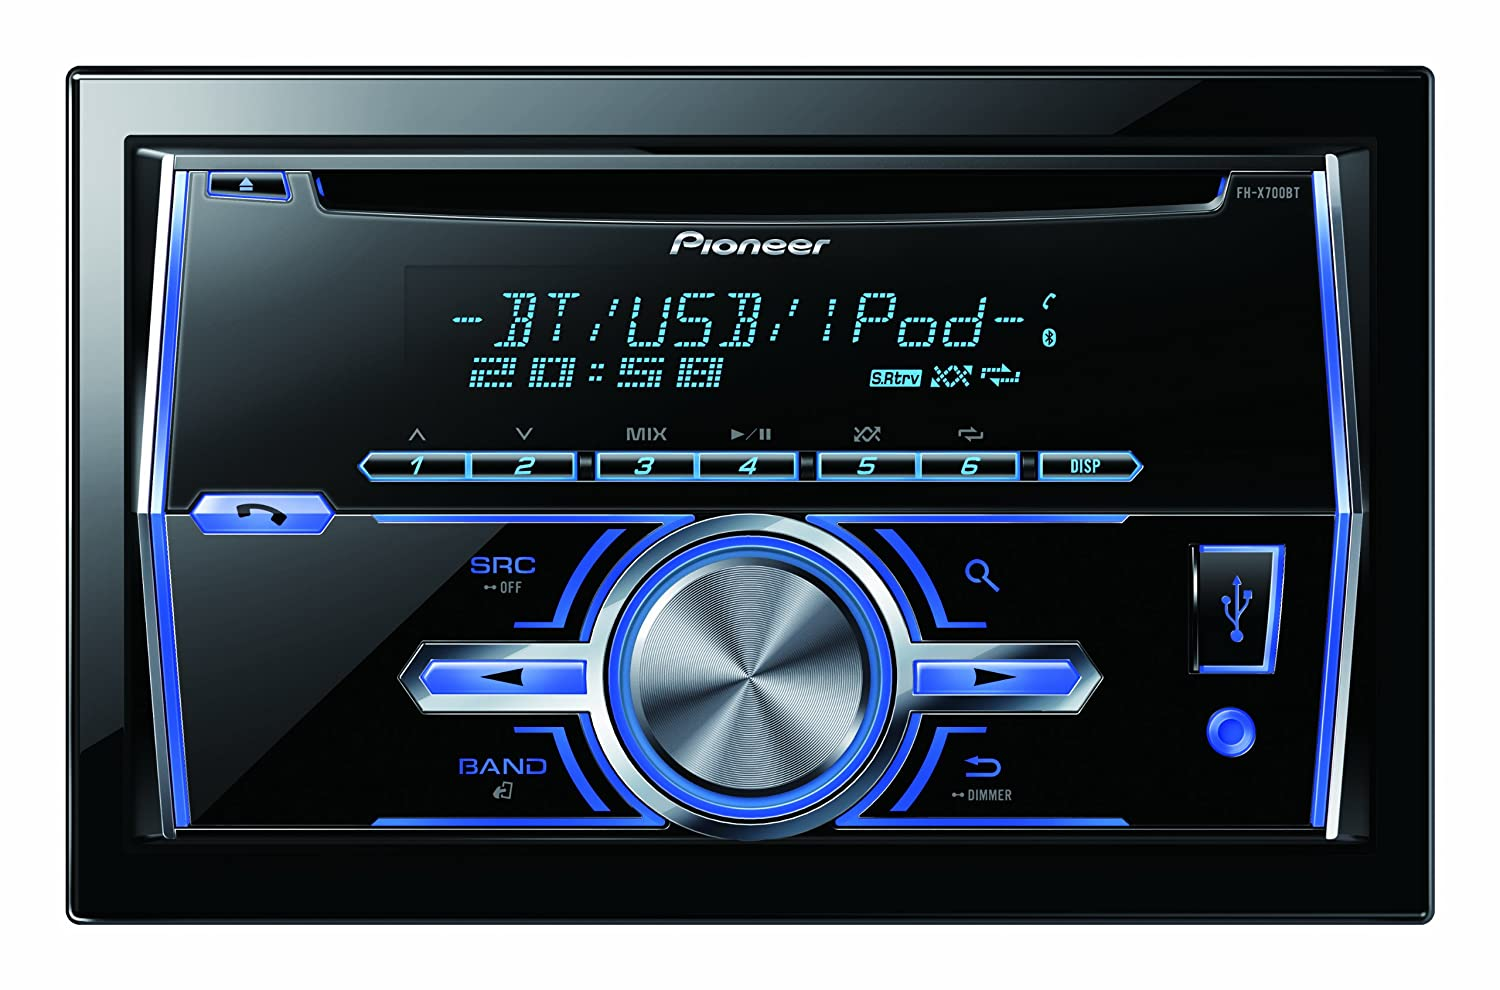 GCSC Car - Top best car stereo collections help you choose